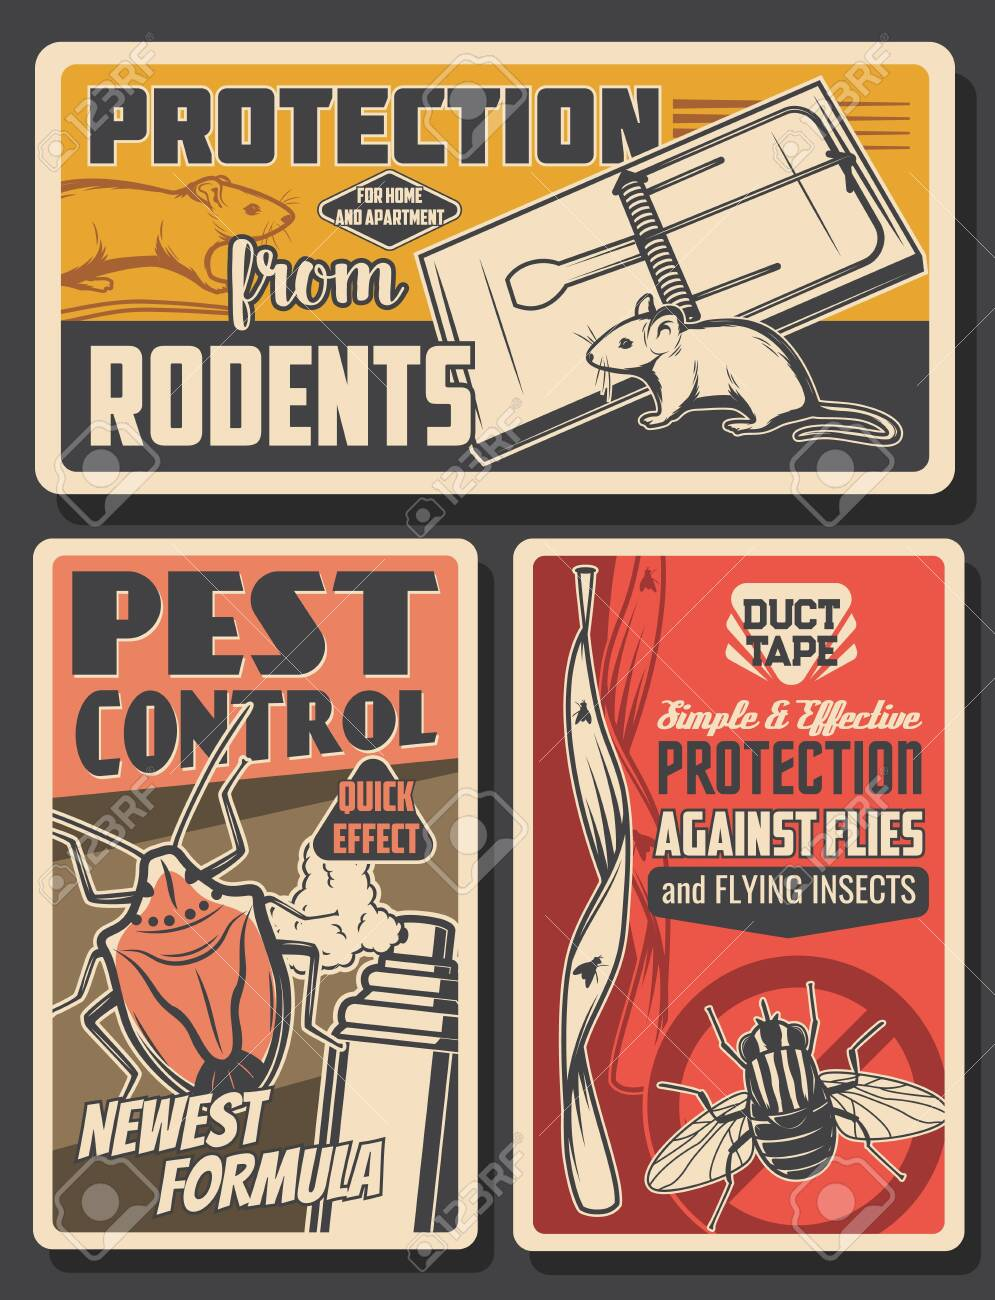 Pest control insects and rodents extermination service, house disinsection. Vector flies, rats, mice and bugs fumigation. Domestic disinfestation, insects and pest control vintage retro posters set - 152698730